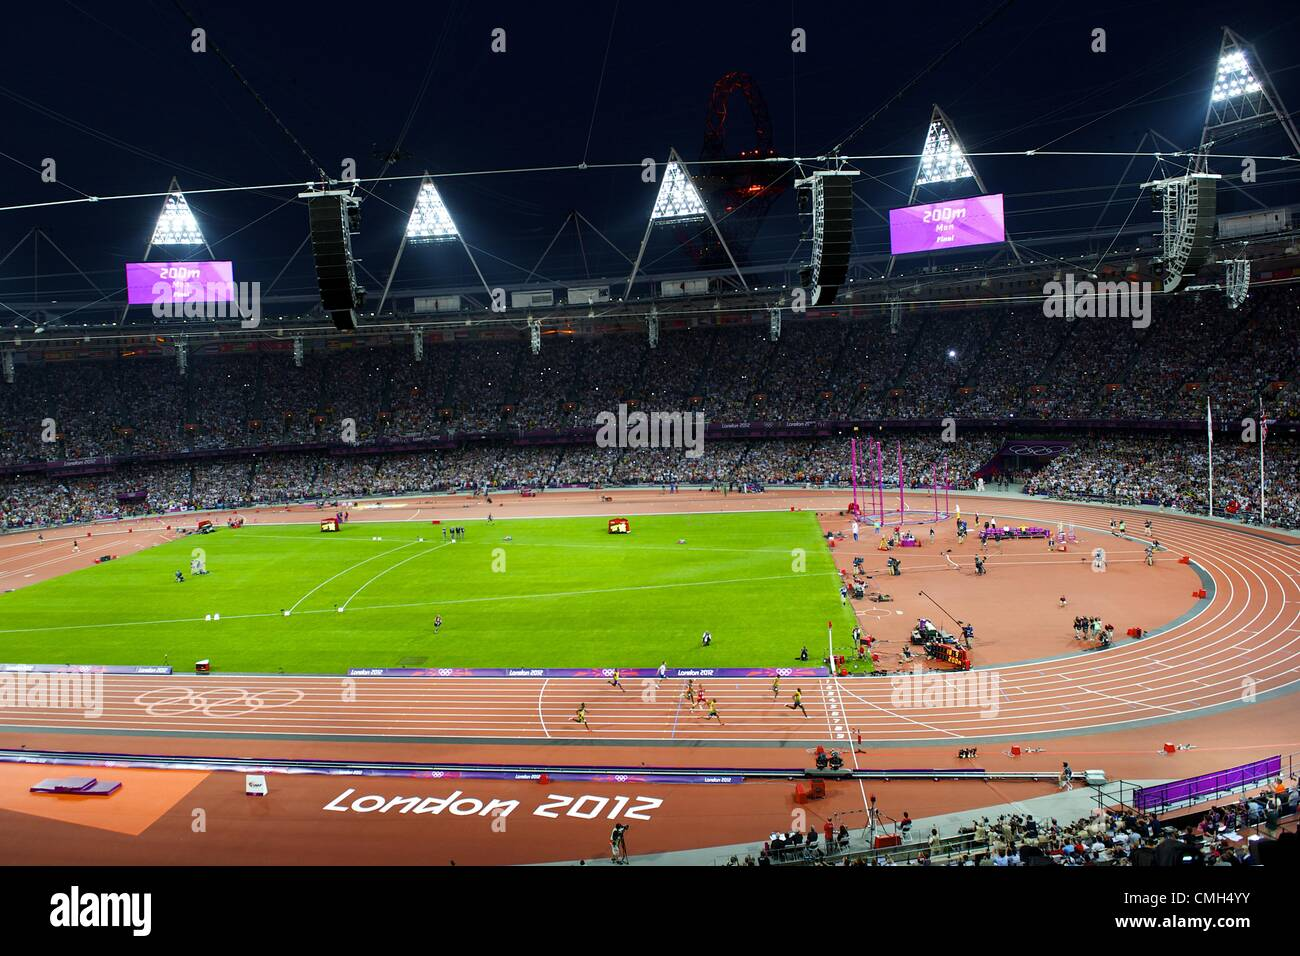 Aug. 9, 2012 - London, England, United Kingdom - Jamaican sprinter USAIN BOLT nears the finish line for a gold medal - Stock Image